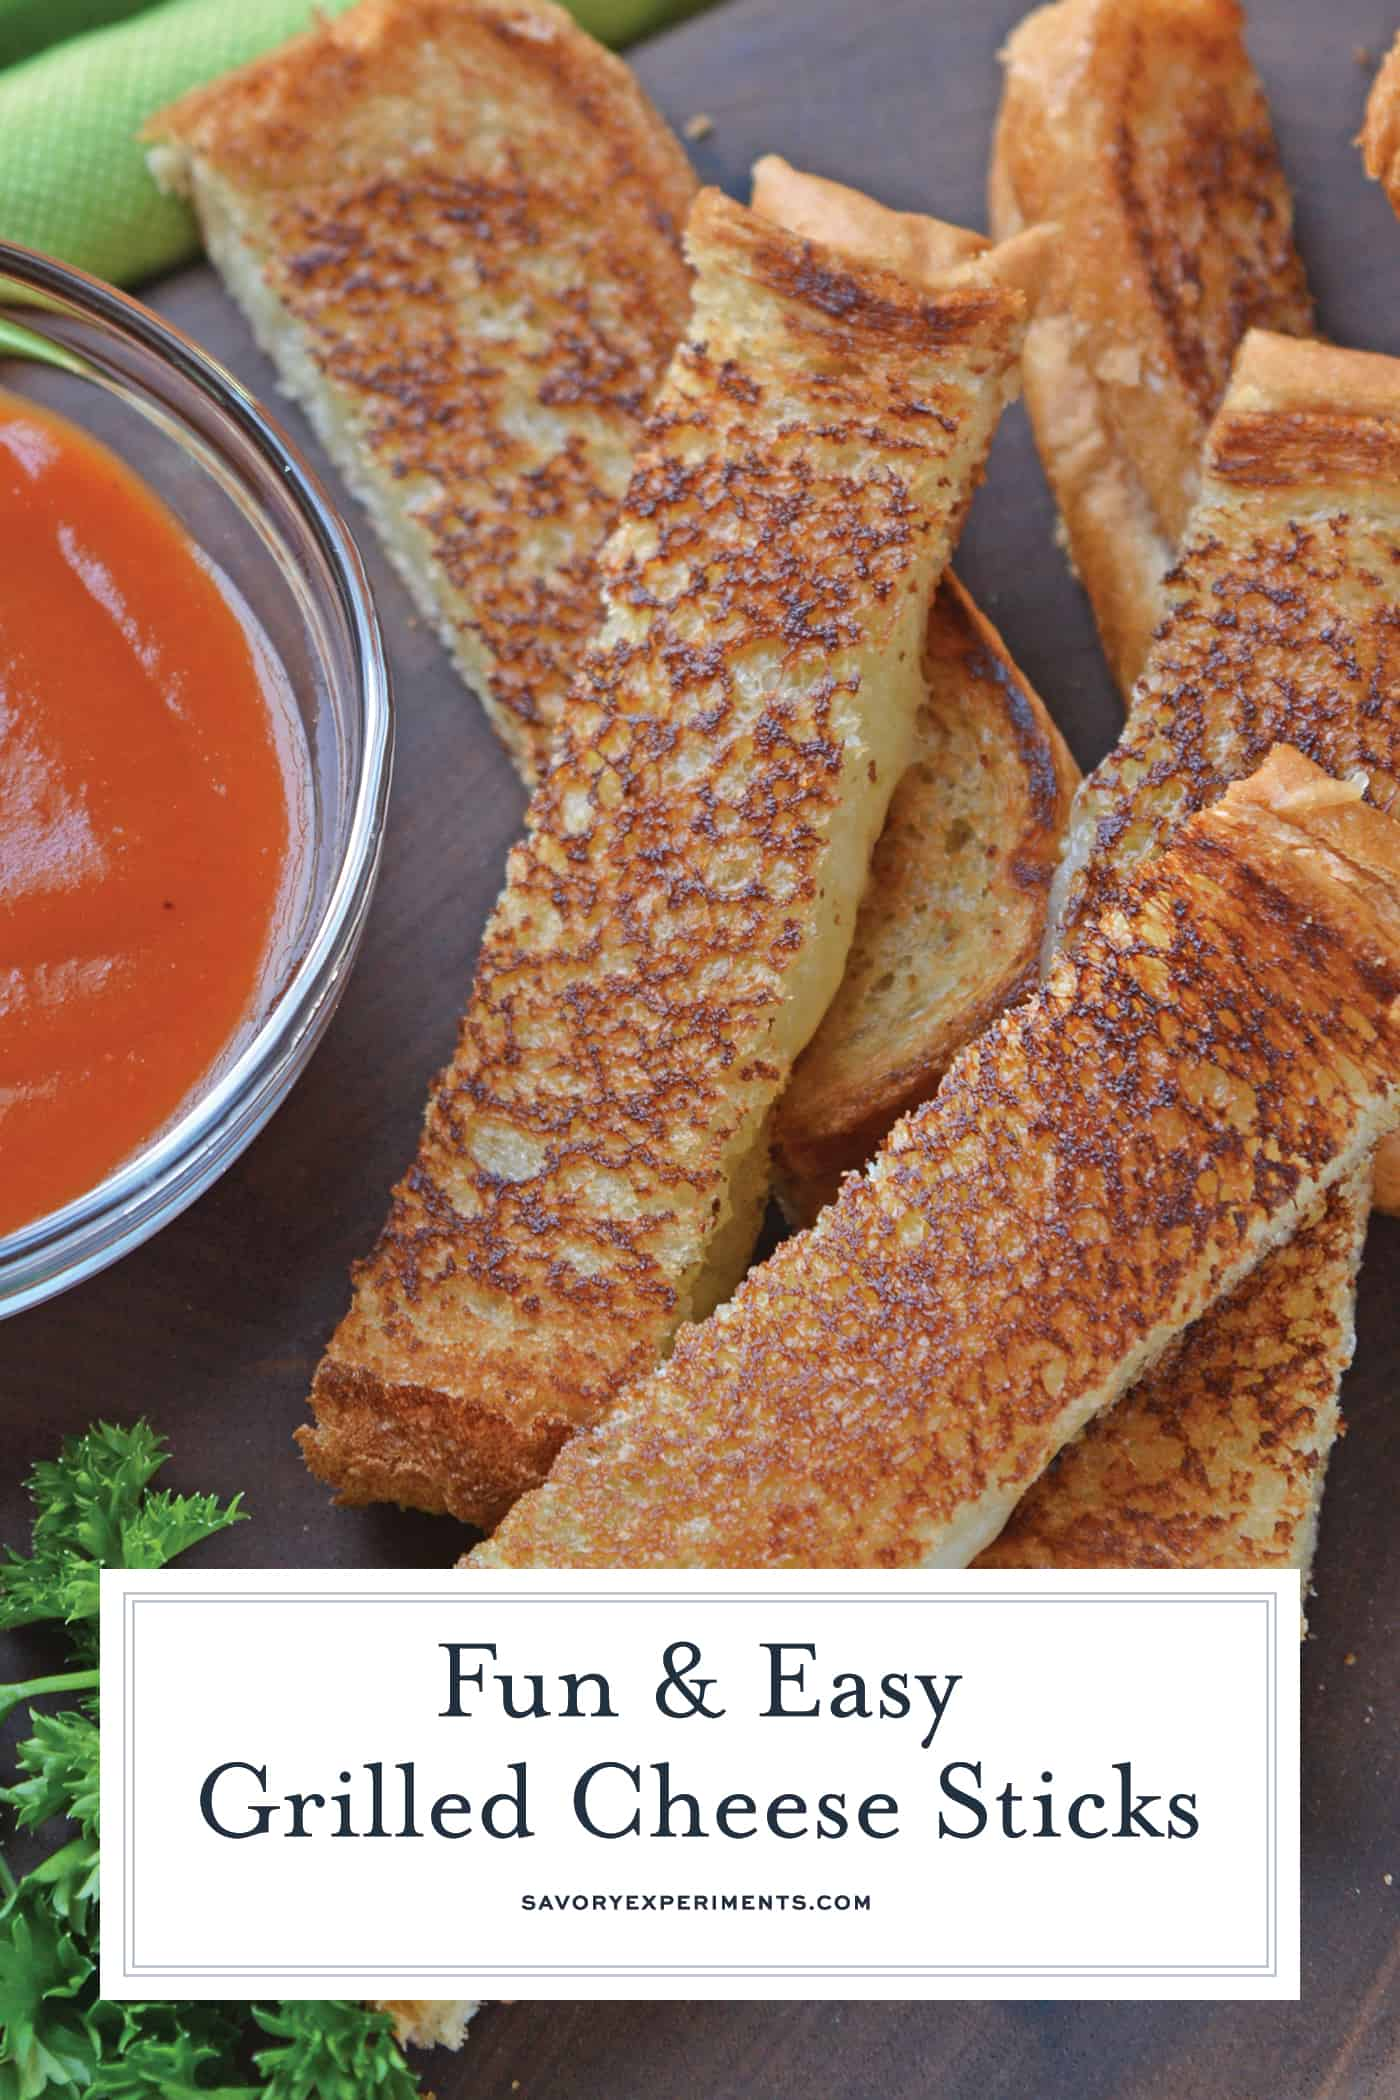 Grilled Cheese Sticks make your childhood favorite into a party-worthy appetizer! Pair with tomato soup or tomato jam for an upscale grilled cheese sandwich recipe.#grilledcheeserecipe www.savoryexperiments.com